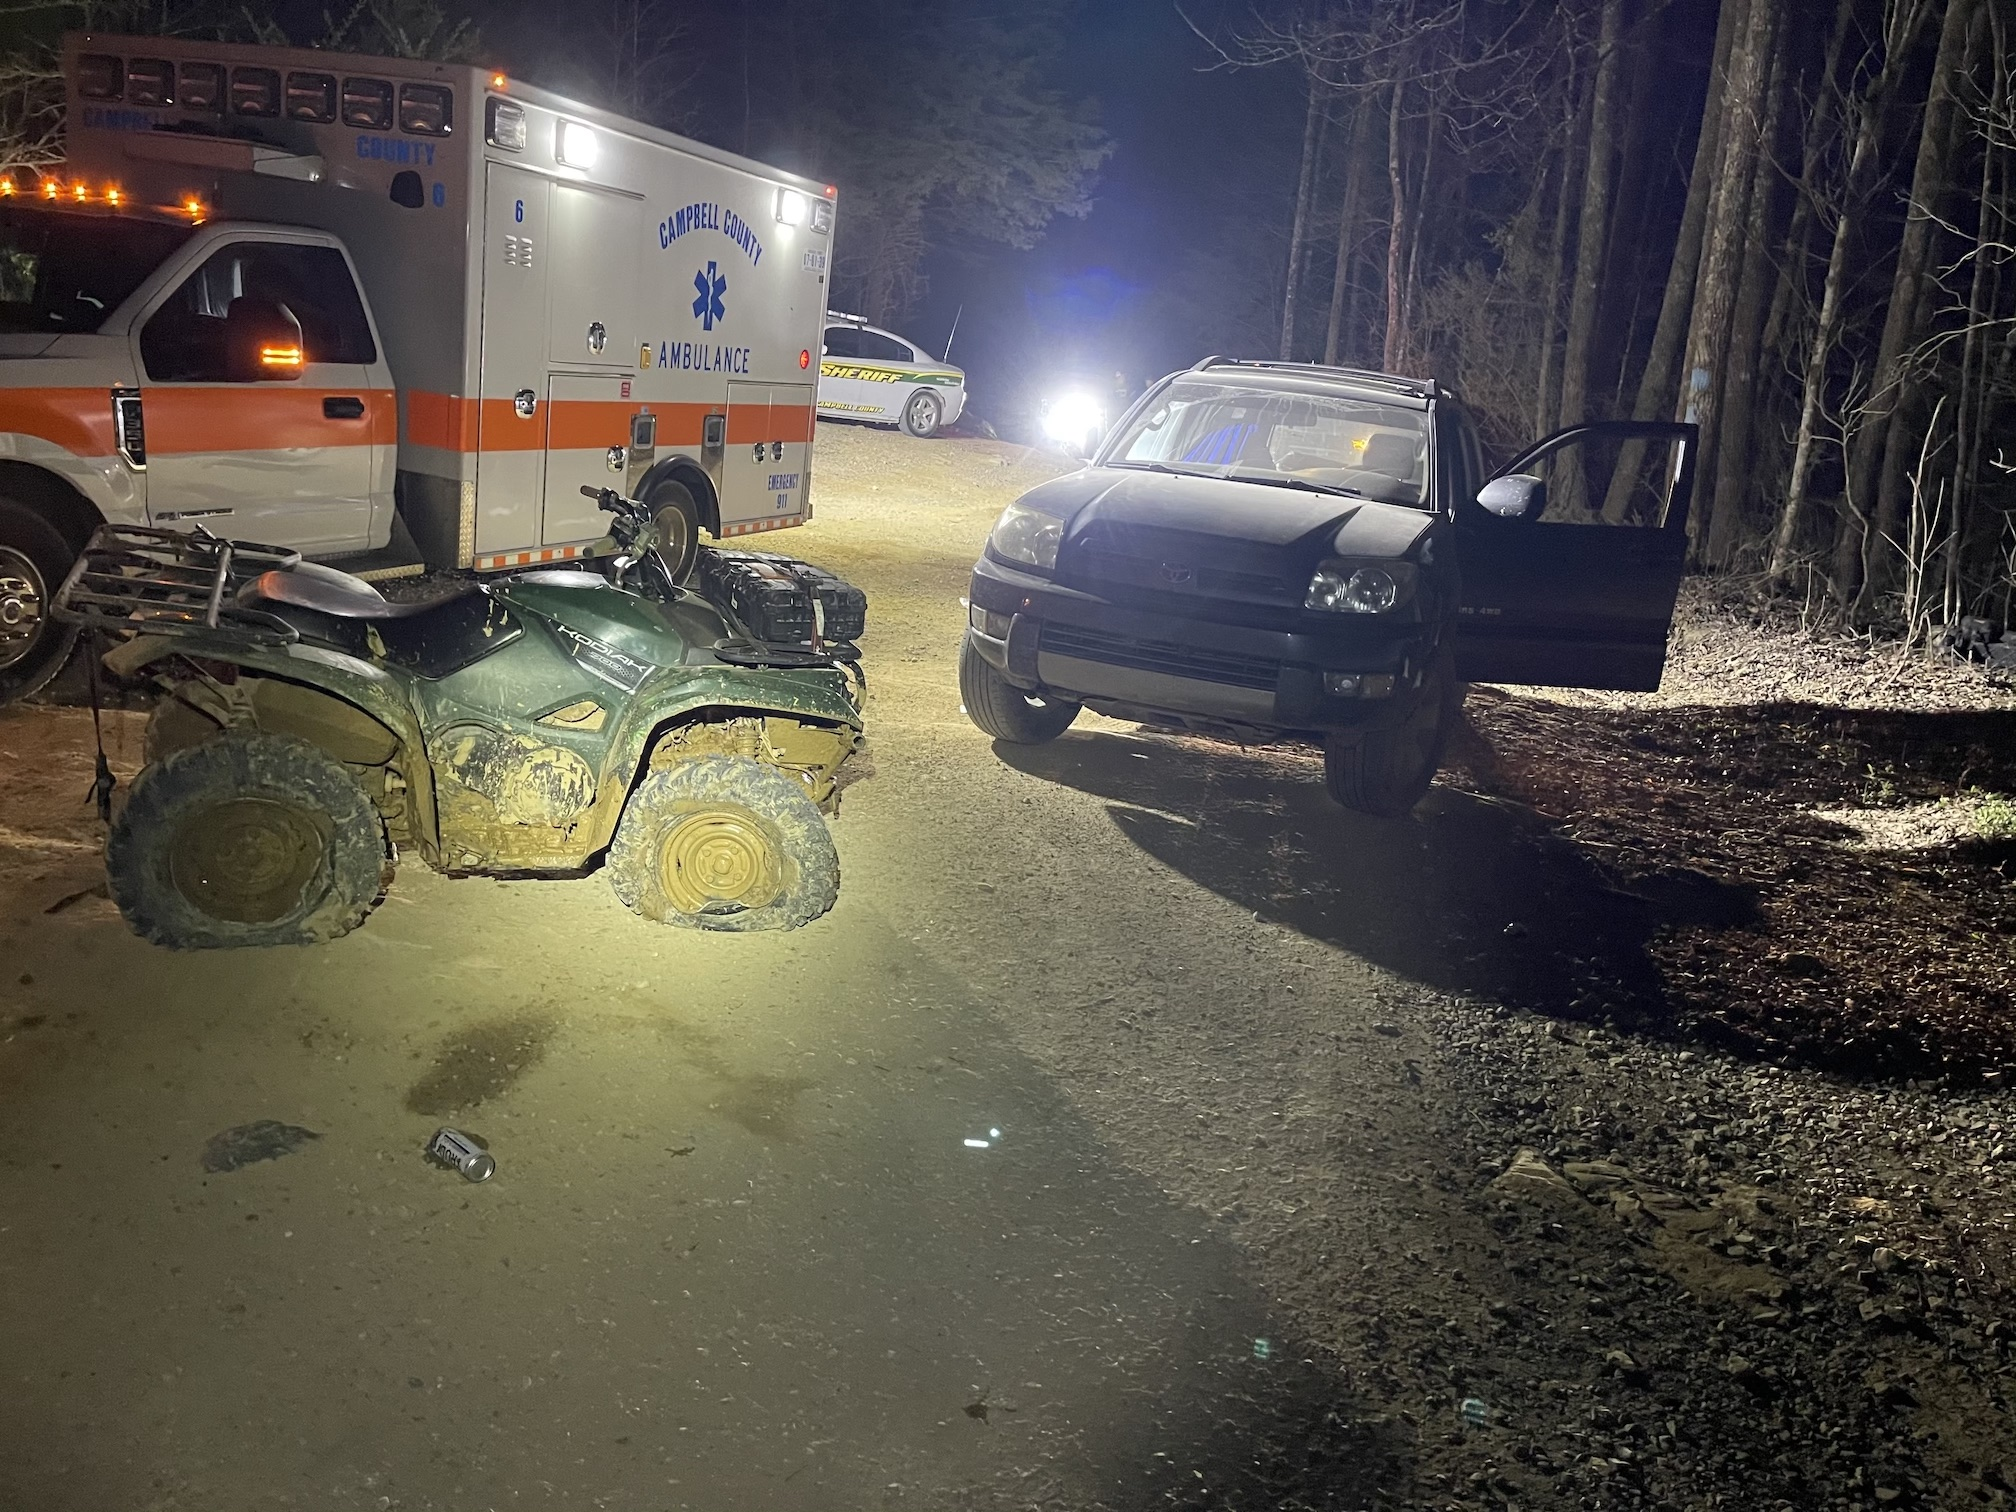 TWRA Investigating a Serious ATV Accident in Cumberland County Involving a Knoxville Man